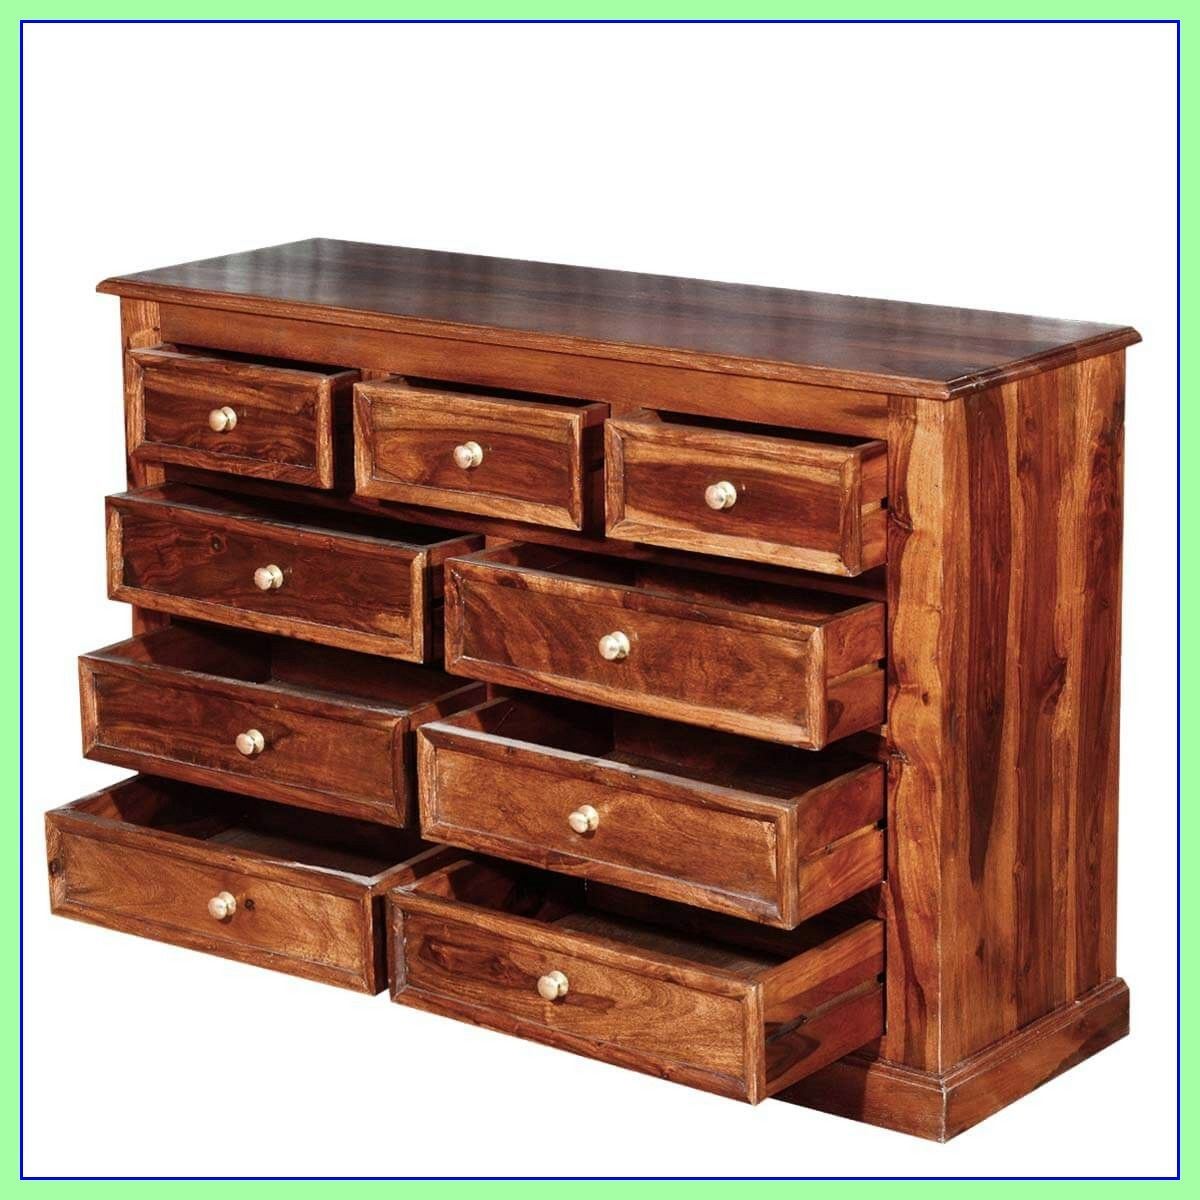 108 Reference Of Drawer Classic Solid Wood In 2020 Dining Room Decor Diy 9 Drawer Dresser Dresser Drawers